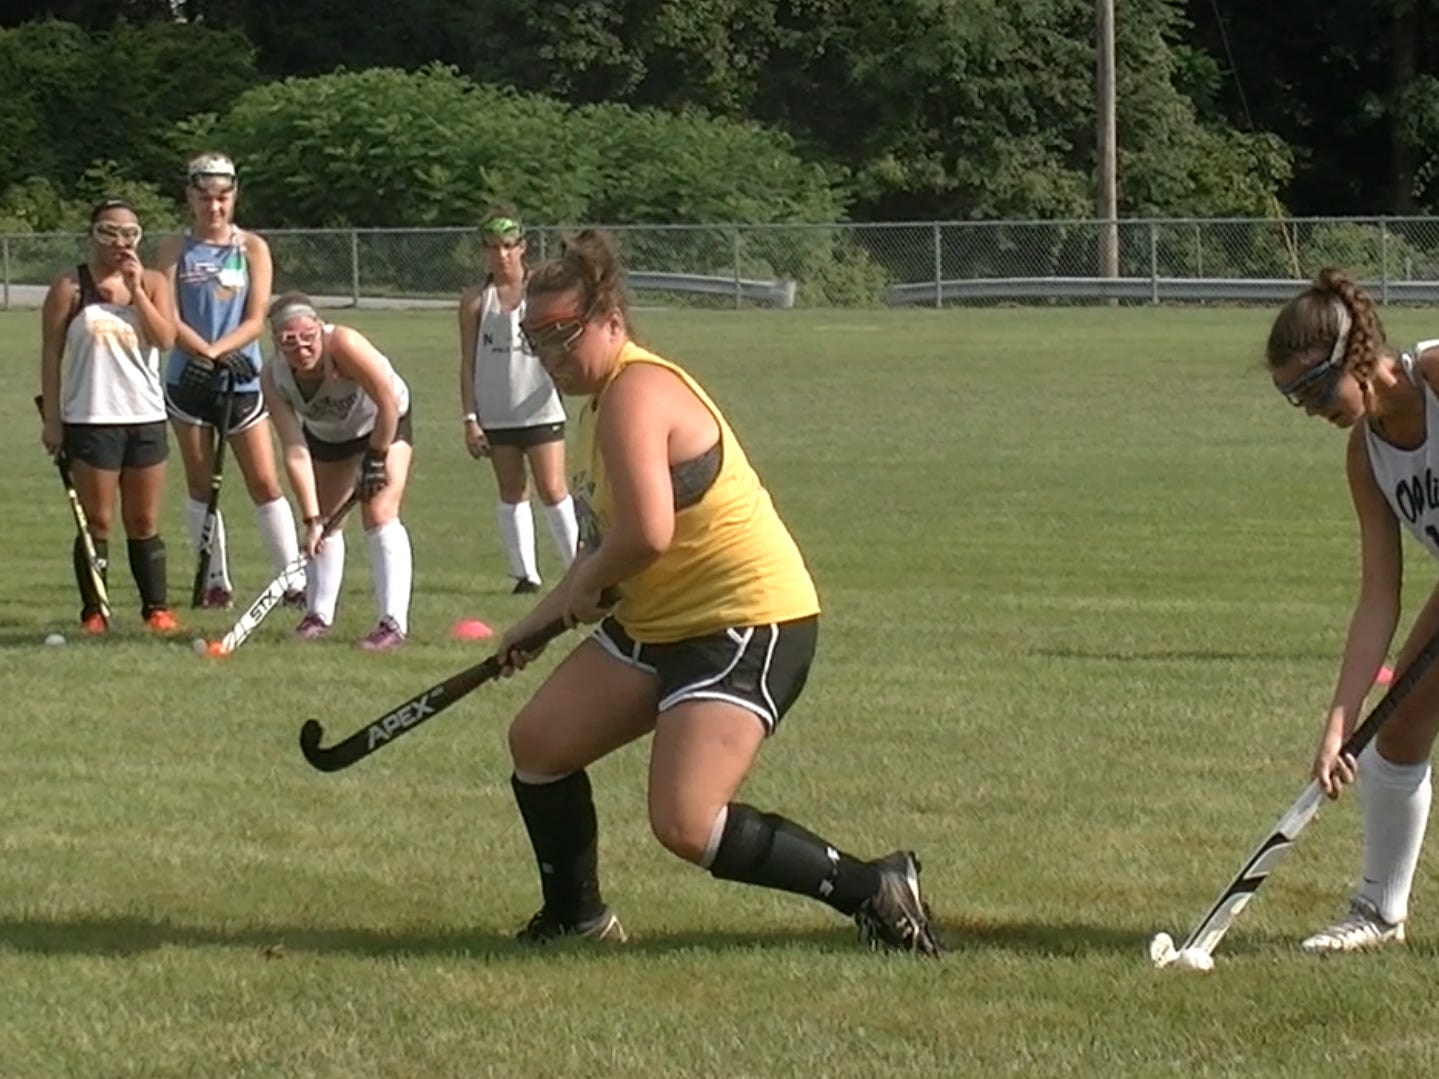 Members of Red Lion's field hockey team conduct drills during the first day of fall sports practice Monday, Aug. 13, 2018.